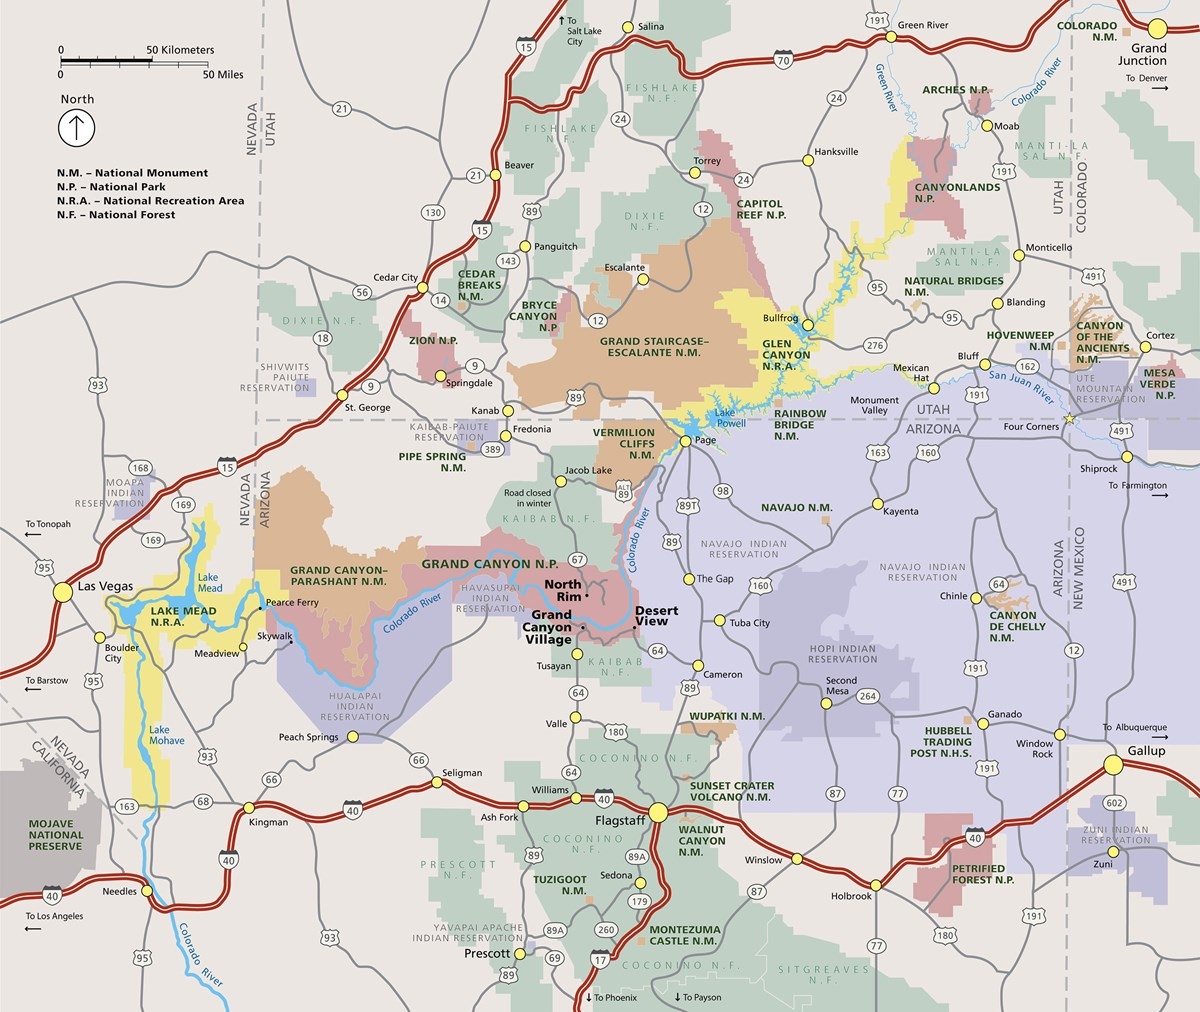 Grand Canyon Area Map: Shows major highways, cities, towns and tribal and public lands.